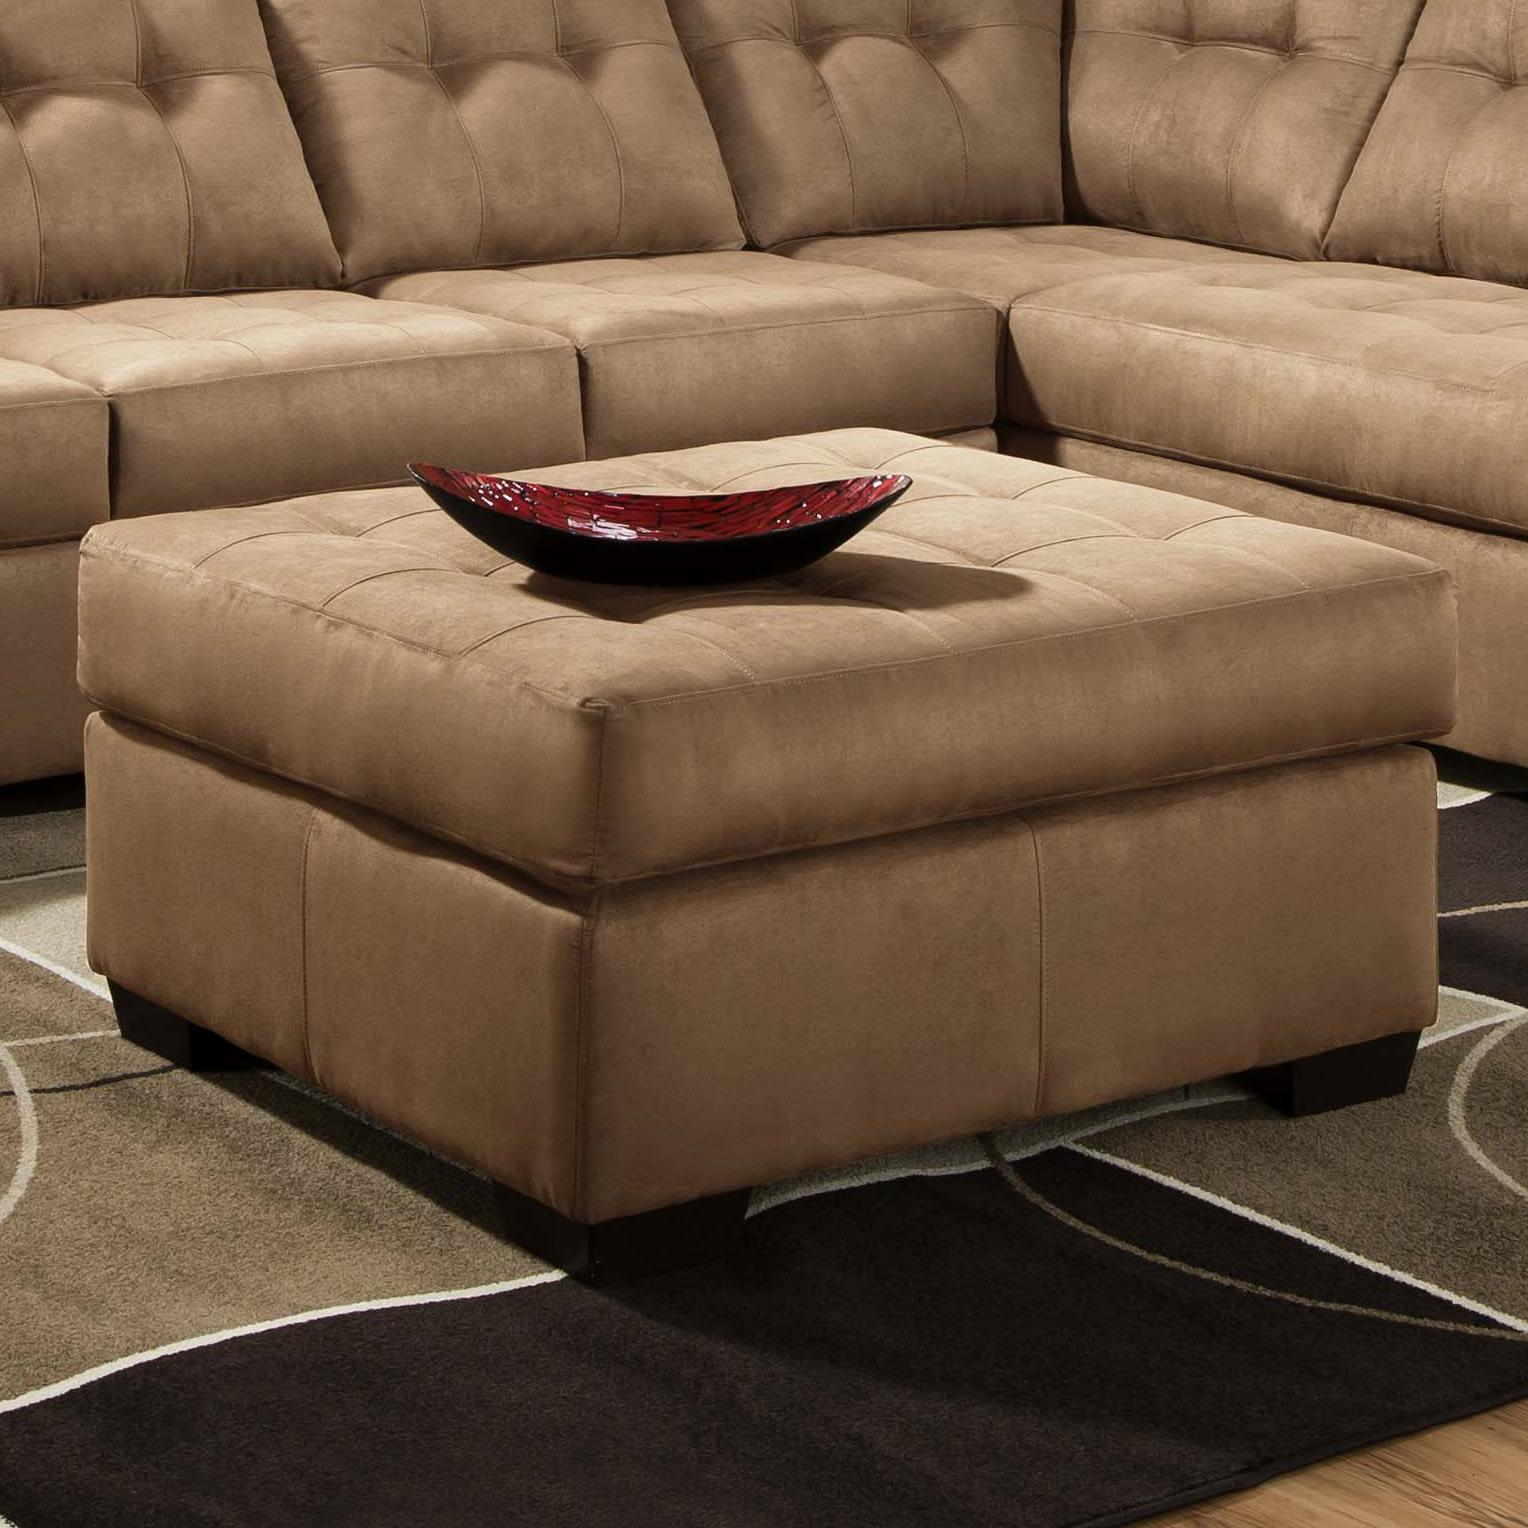 United Furniture Industries 9558 Transitional Tufted Cocktail Ottoman - Item Number: 9558 Ottoman Latte